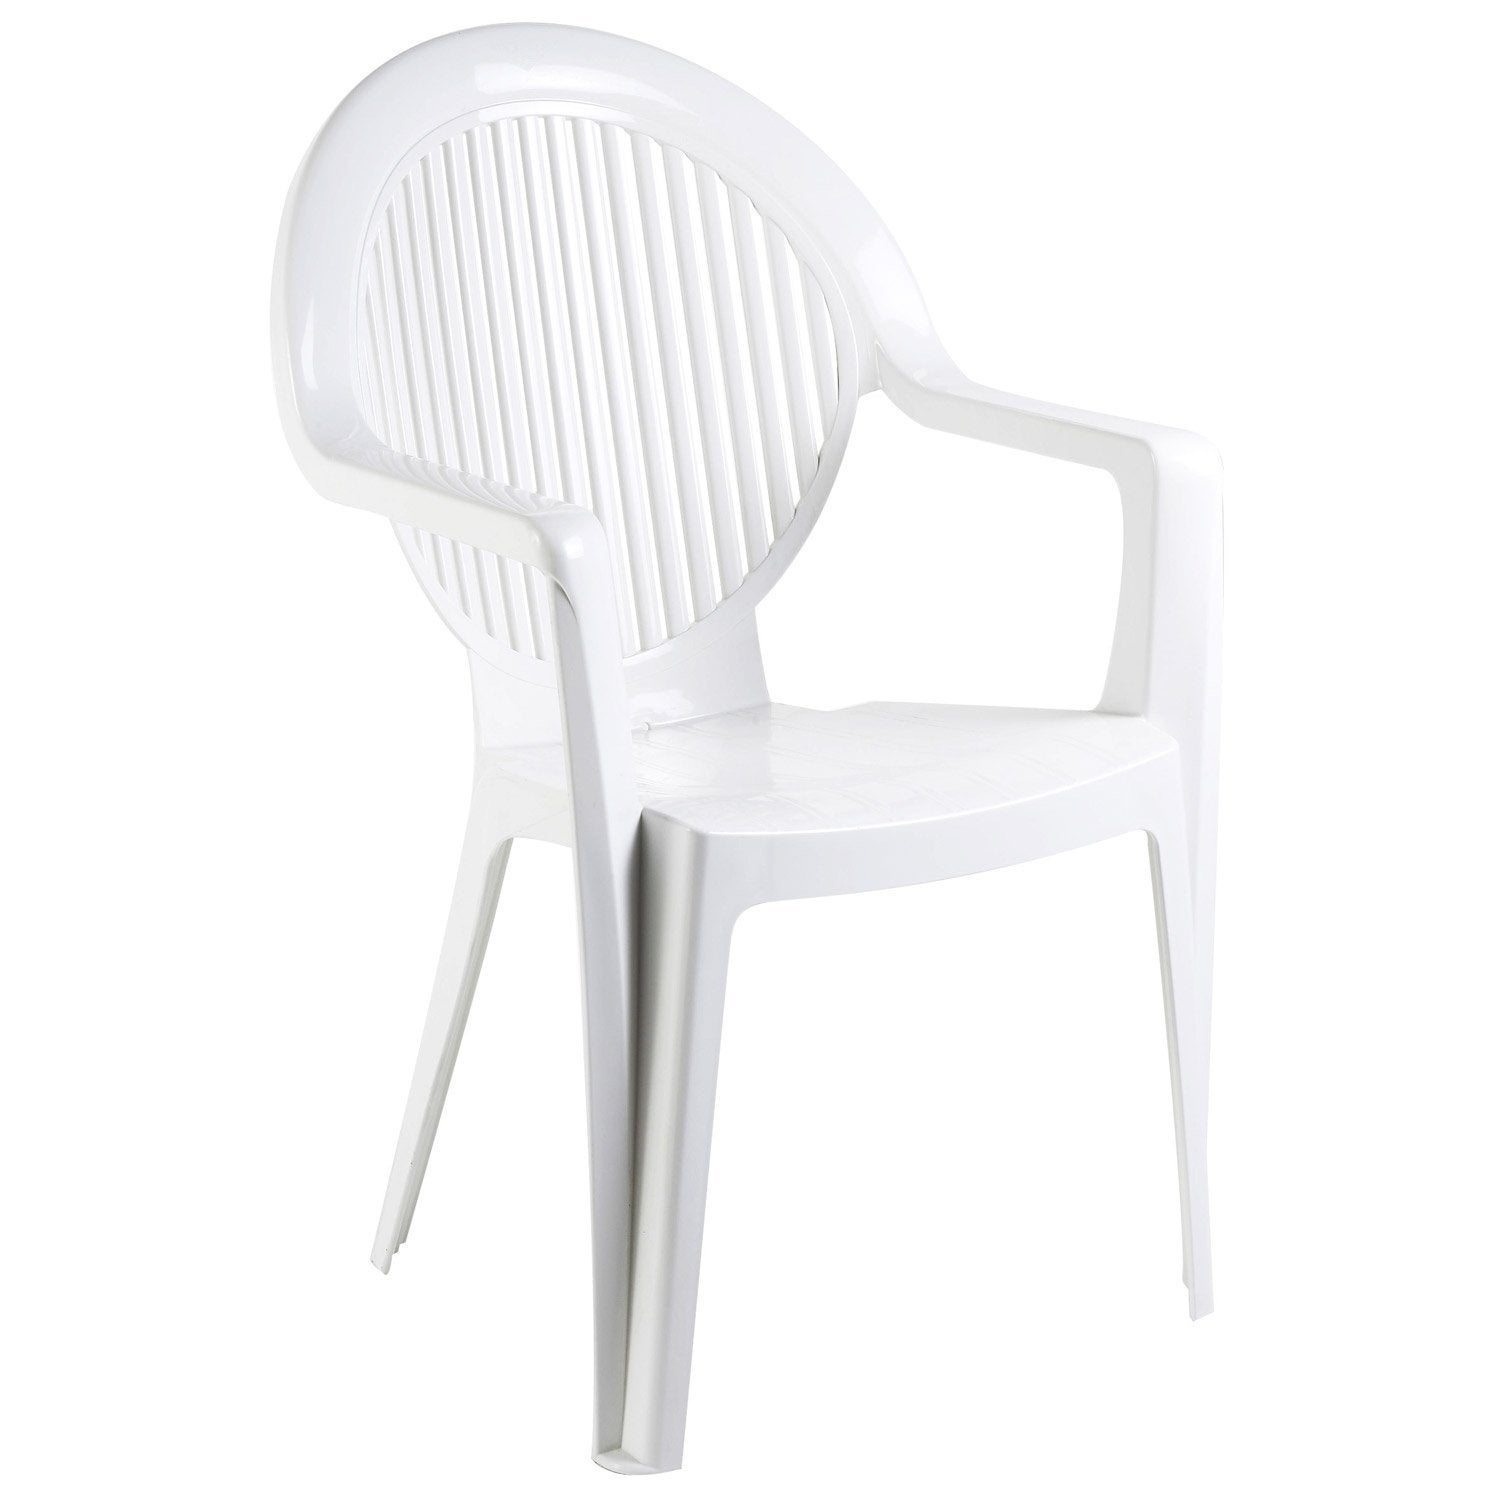 fauteuil de jardin en r sine fidji blanc leroy merlin. Black Bedroom Furniture Sets. Home Design Ideas